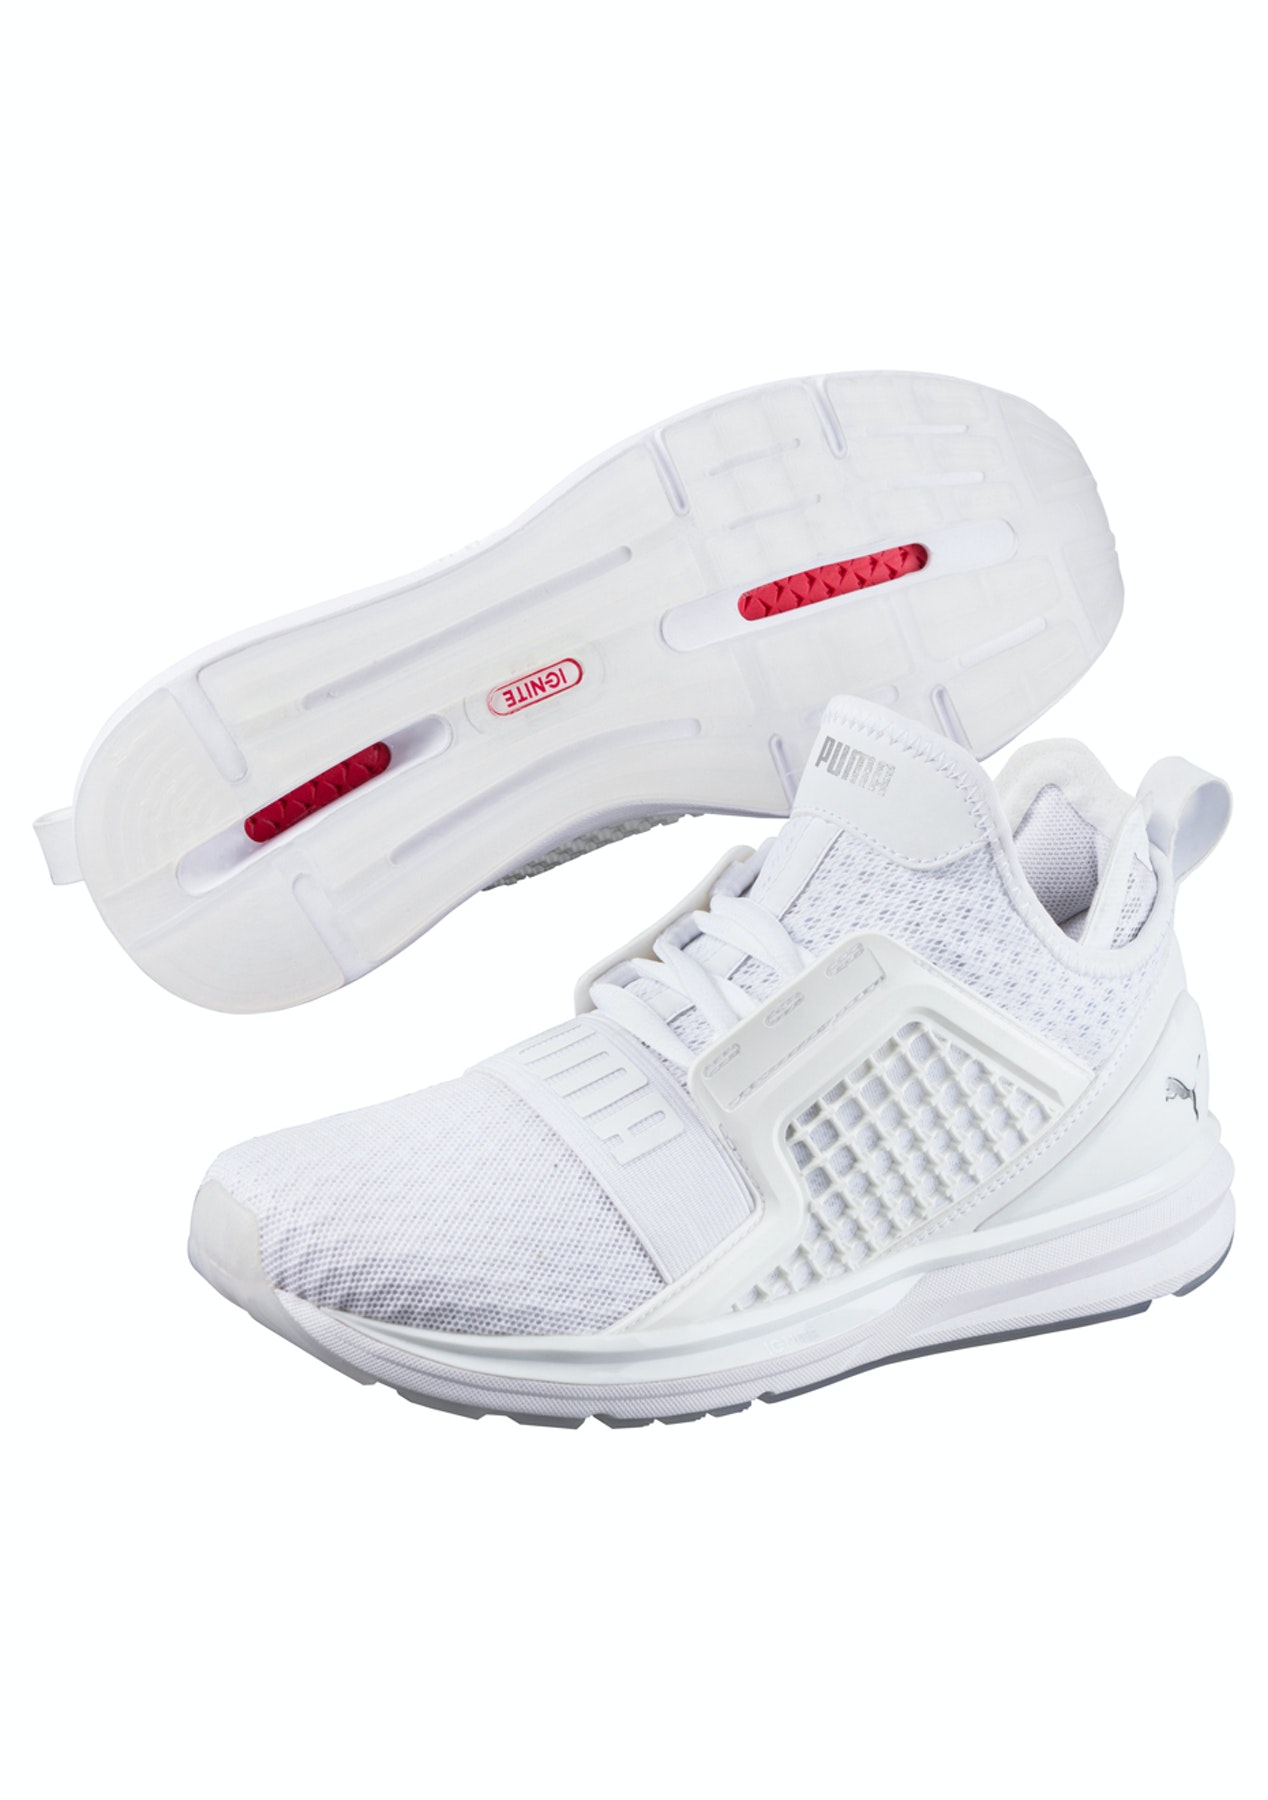 Puma Womens - Ignite Limitless White - Puma Womens   Kids up to 63% Off -  Onceit fdb3839e7